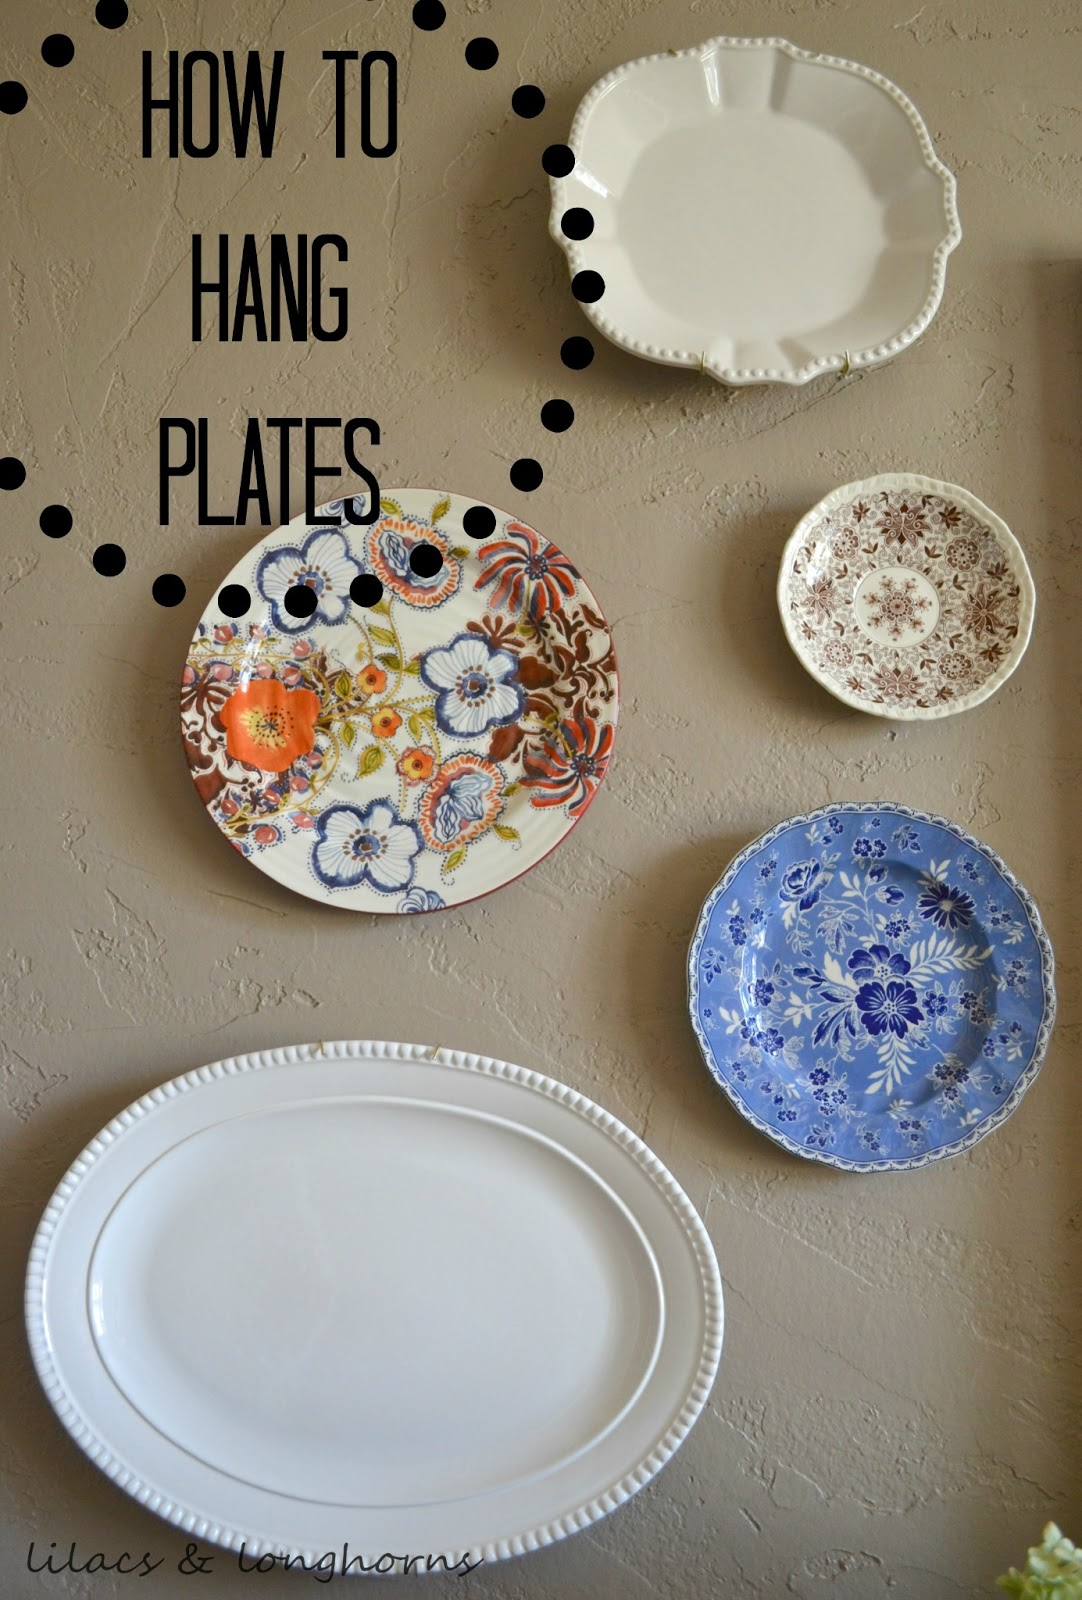 How to Hang Plates & How to Hang Plates - Lilacs and LonghornsLilacs and Longhorns